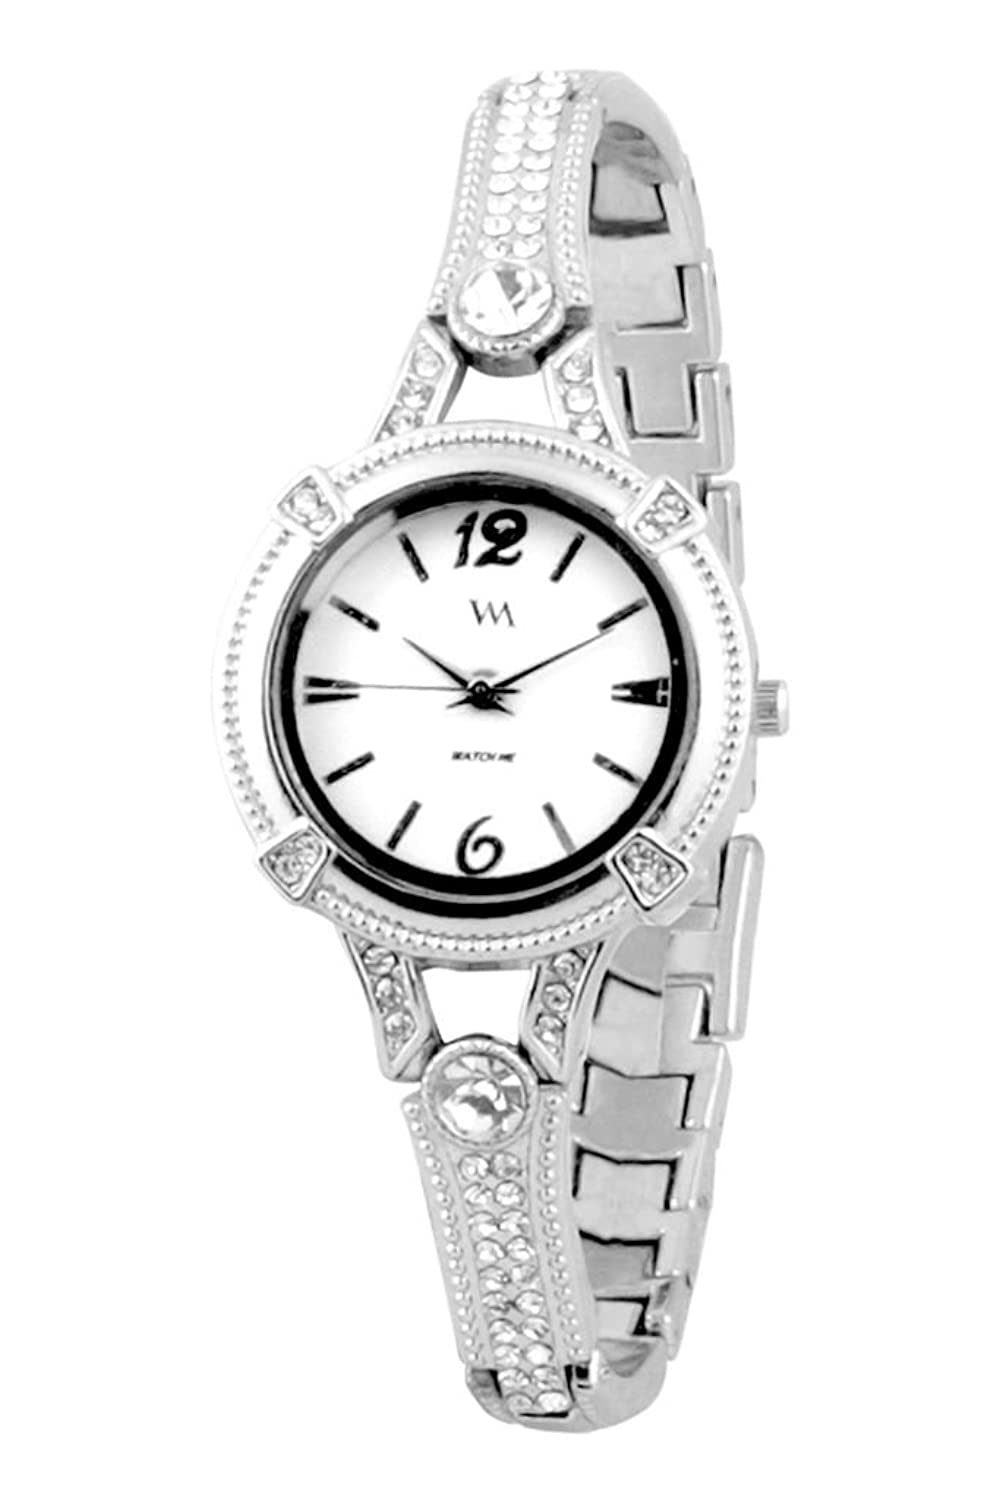 Buy Watch Me Analogue Quartz Watch for Girls and Womens (Also ...